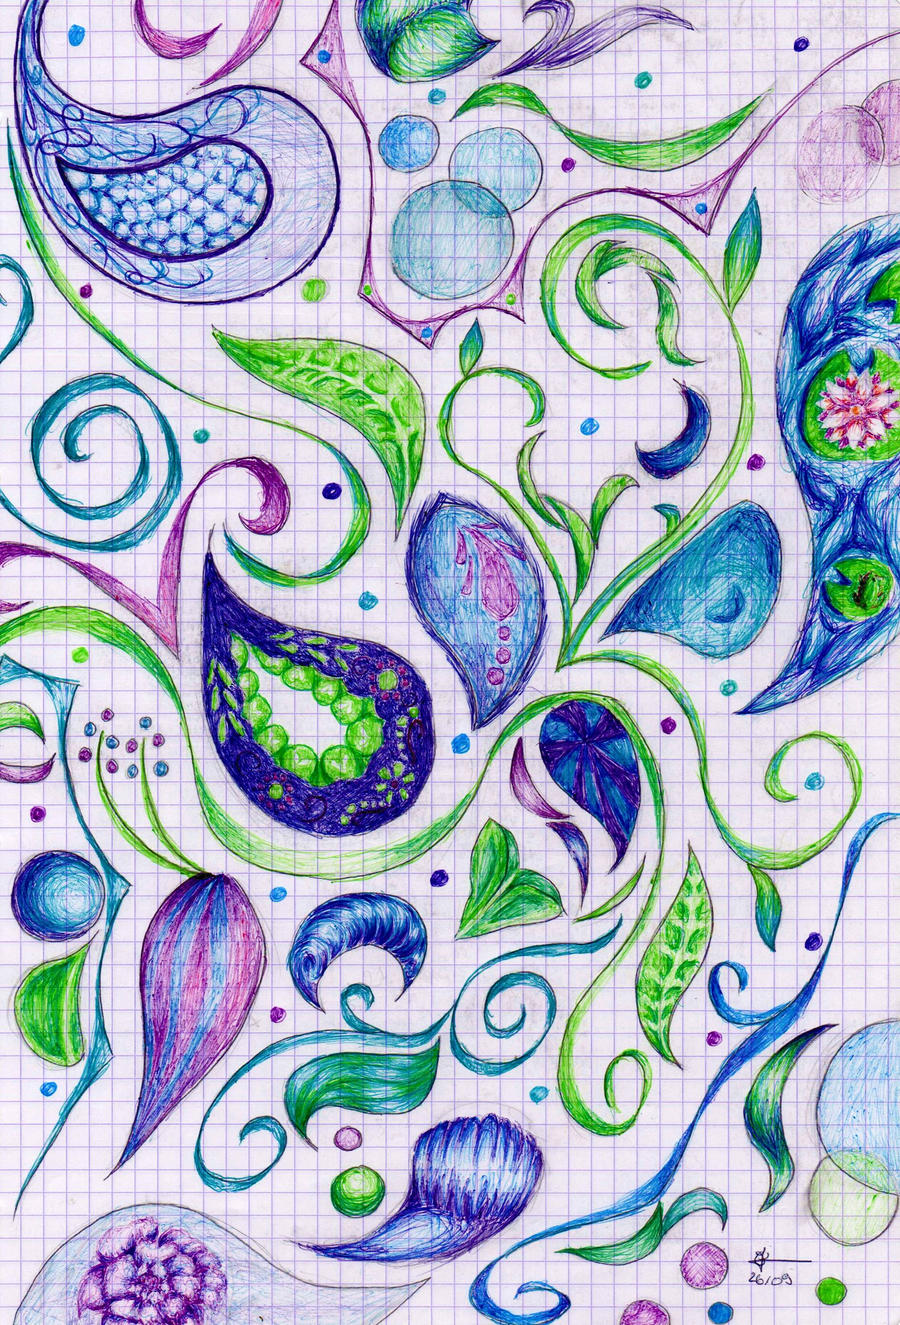 Dessins by Cecilou +1 le 22/12 p5 Playing_with_colors_by_cecilou_chan-d4b3kj3